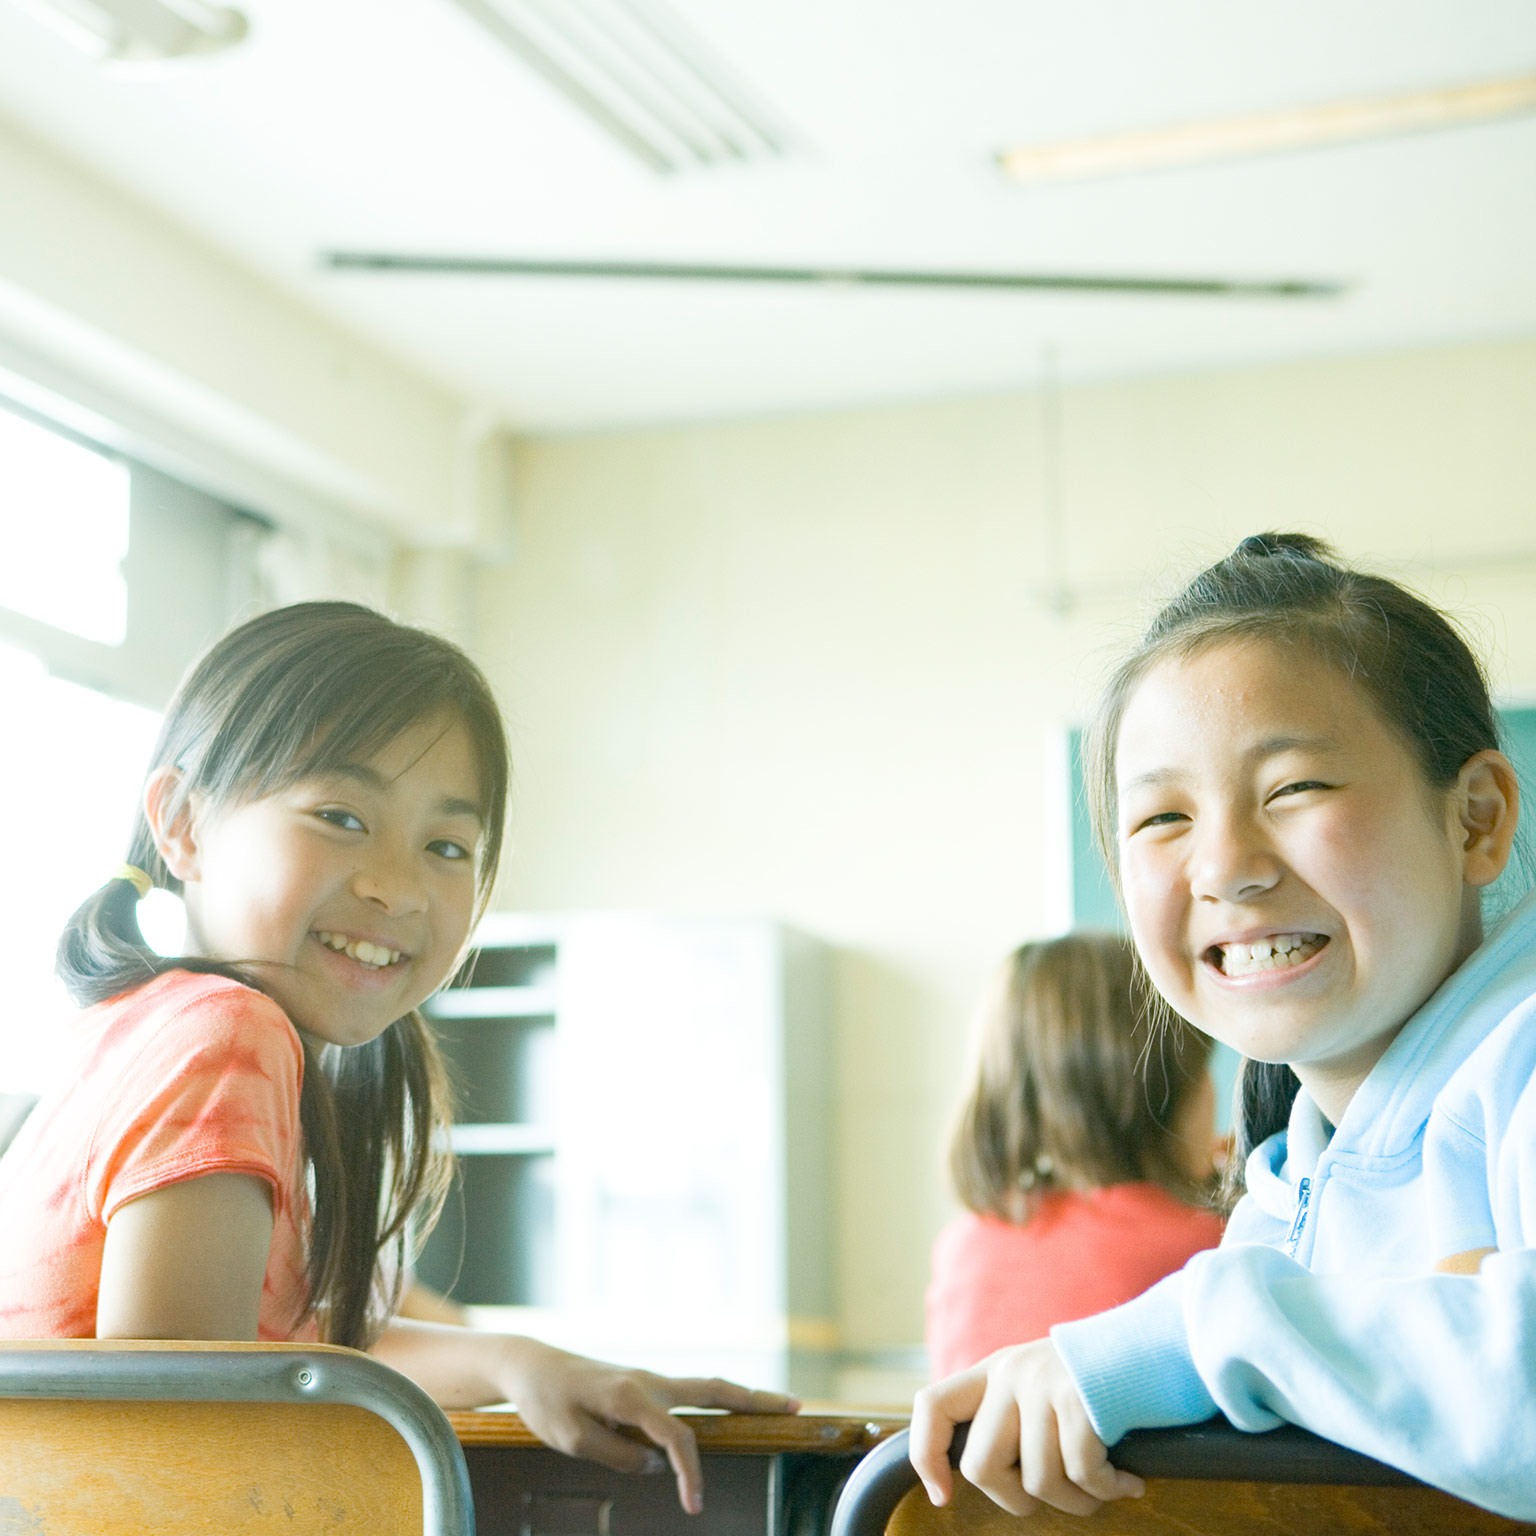 How to improve student educational outcomes: New insights from data analytics